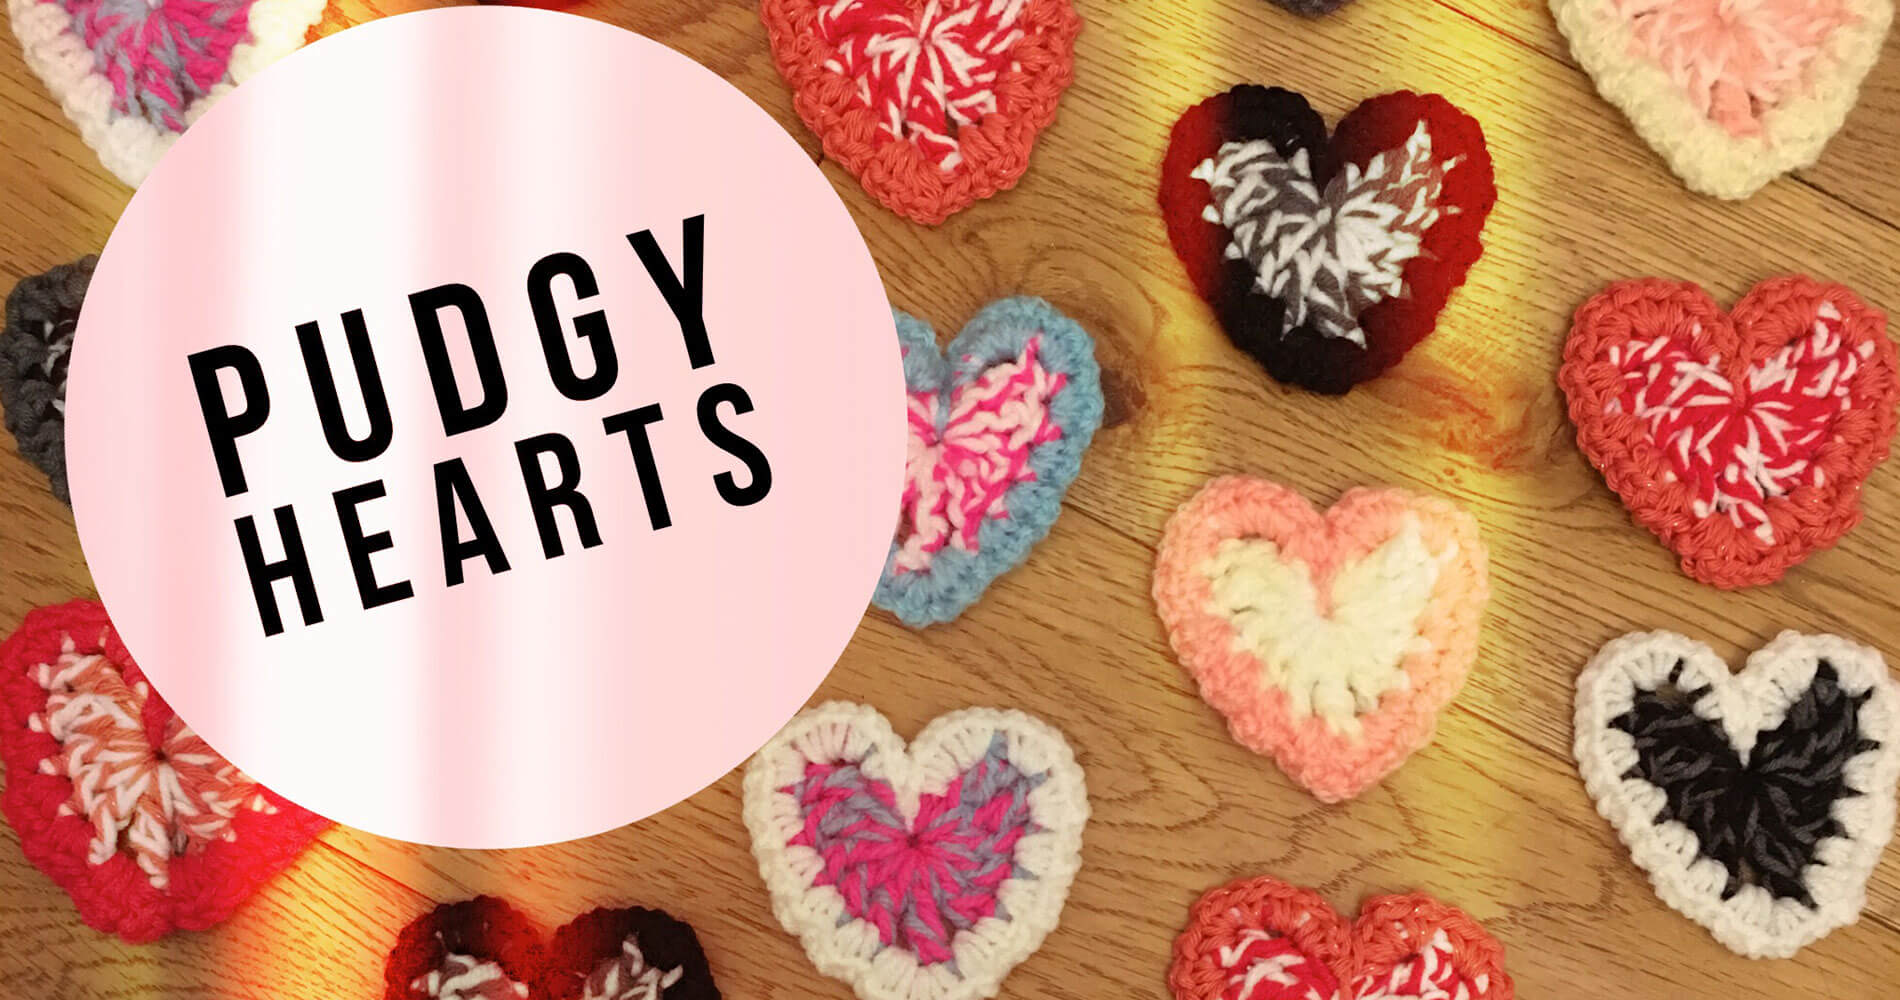 It Started with a Stitch - Pudgy Hearts